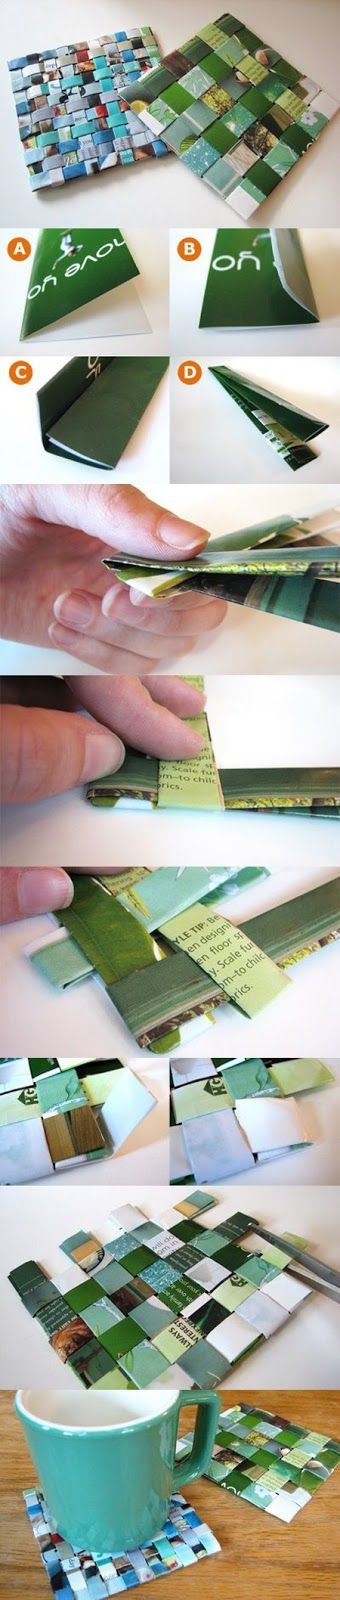 How To: Make Recycled Magazine Coasters. Simple, but don't forget to seal your new coaster to keep it safe from water.